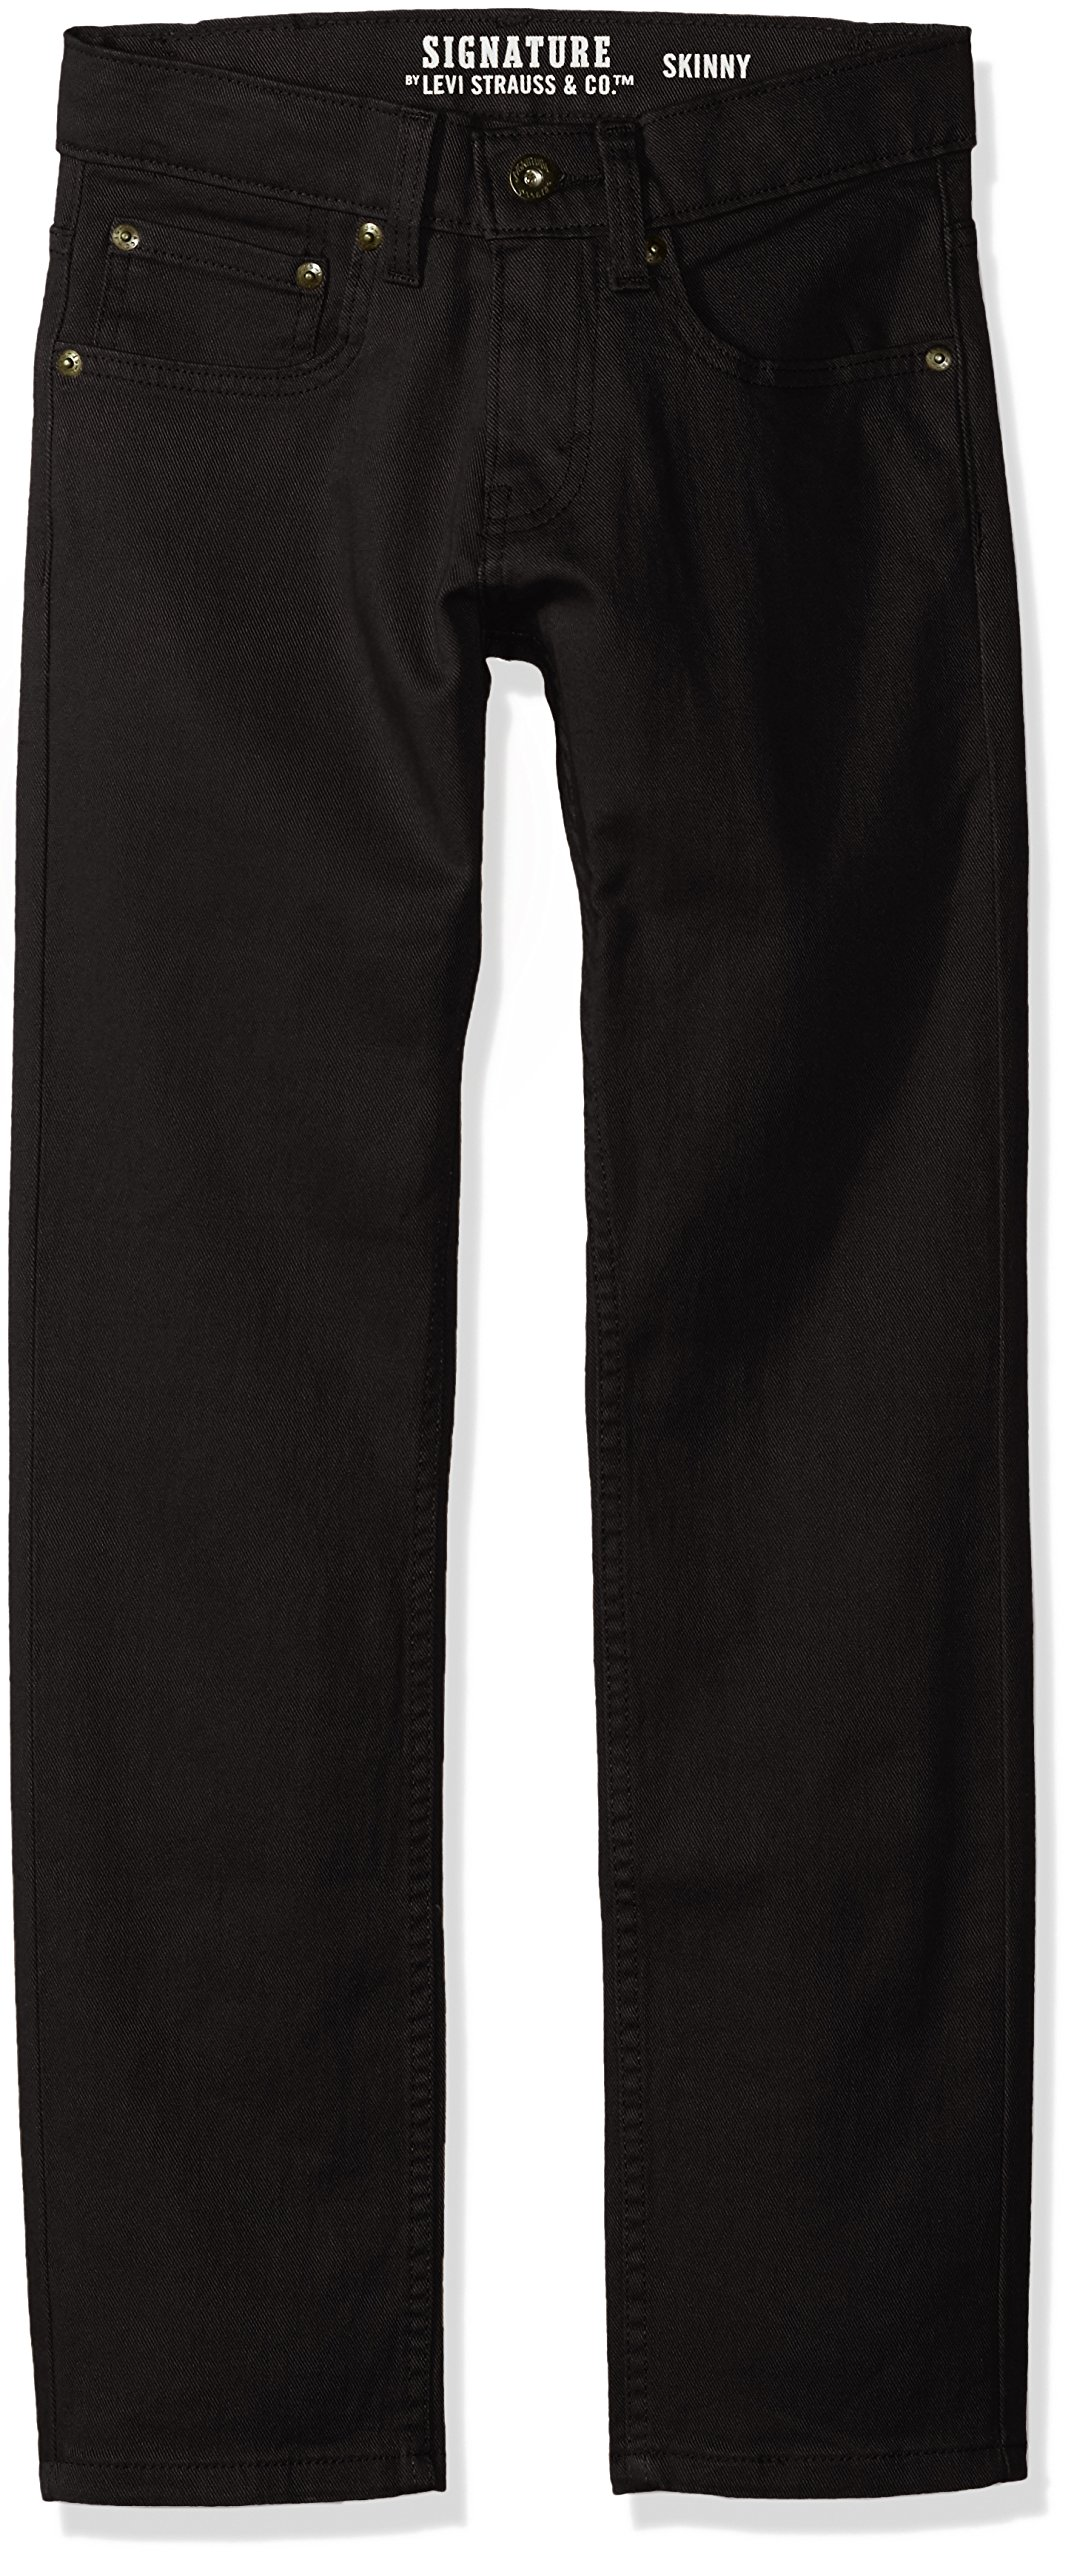 Signature by Levi Strauss & Co. Gold Label Big Boys' Slim Straight Fit Jeans, Raven, 8